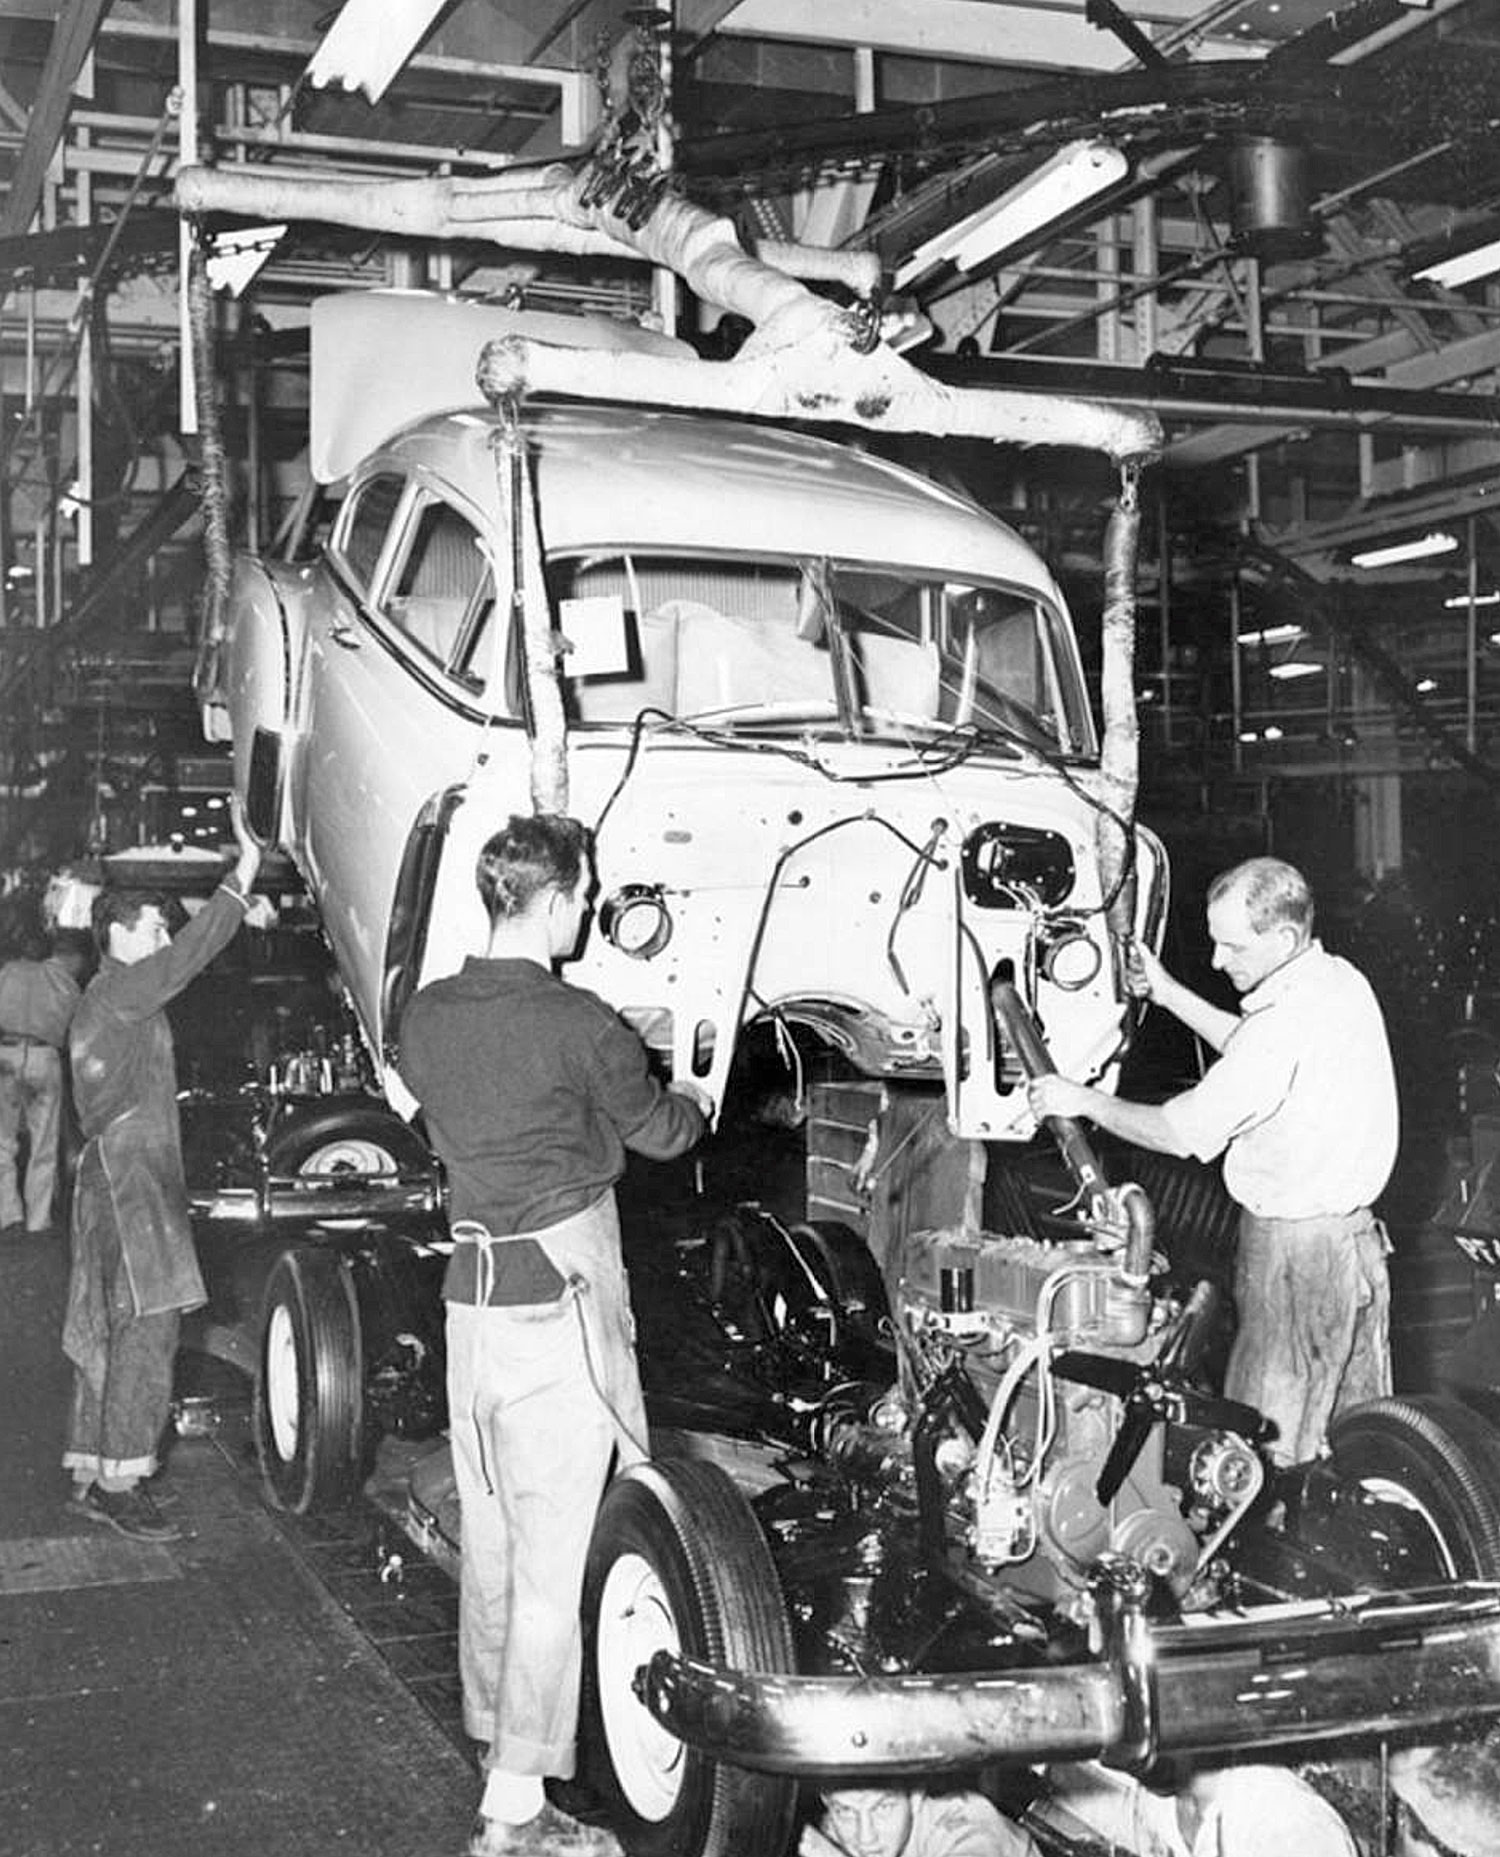 Assembly Line At The Chevrolet Plant Van Nuys, California